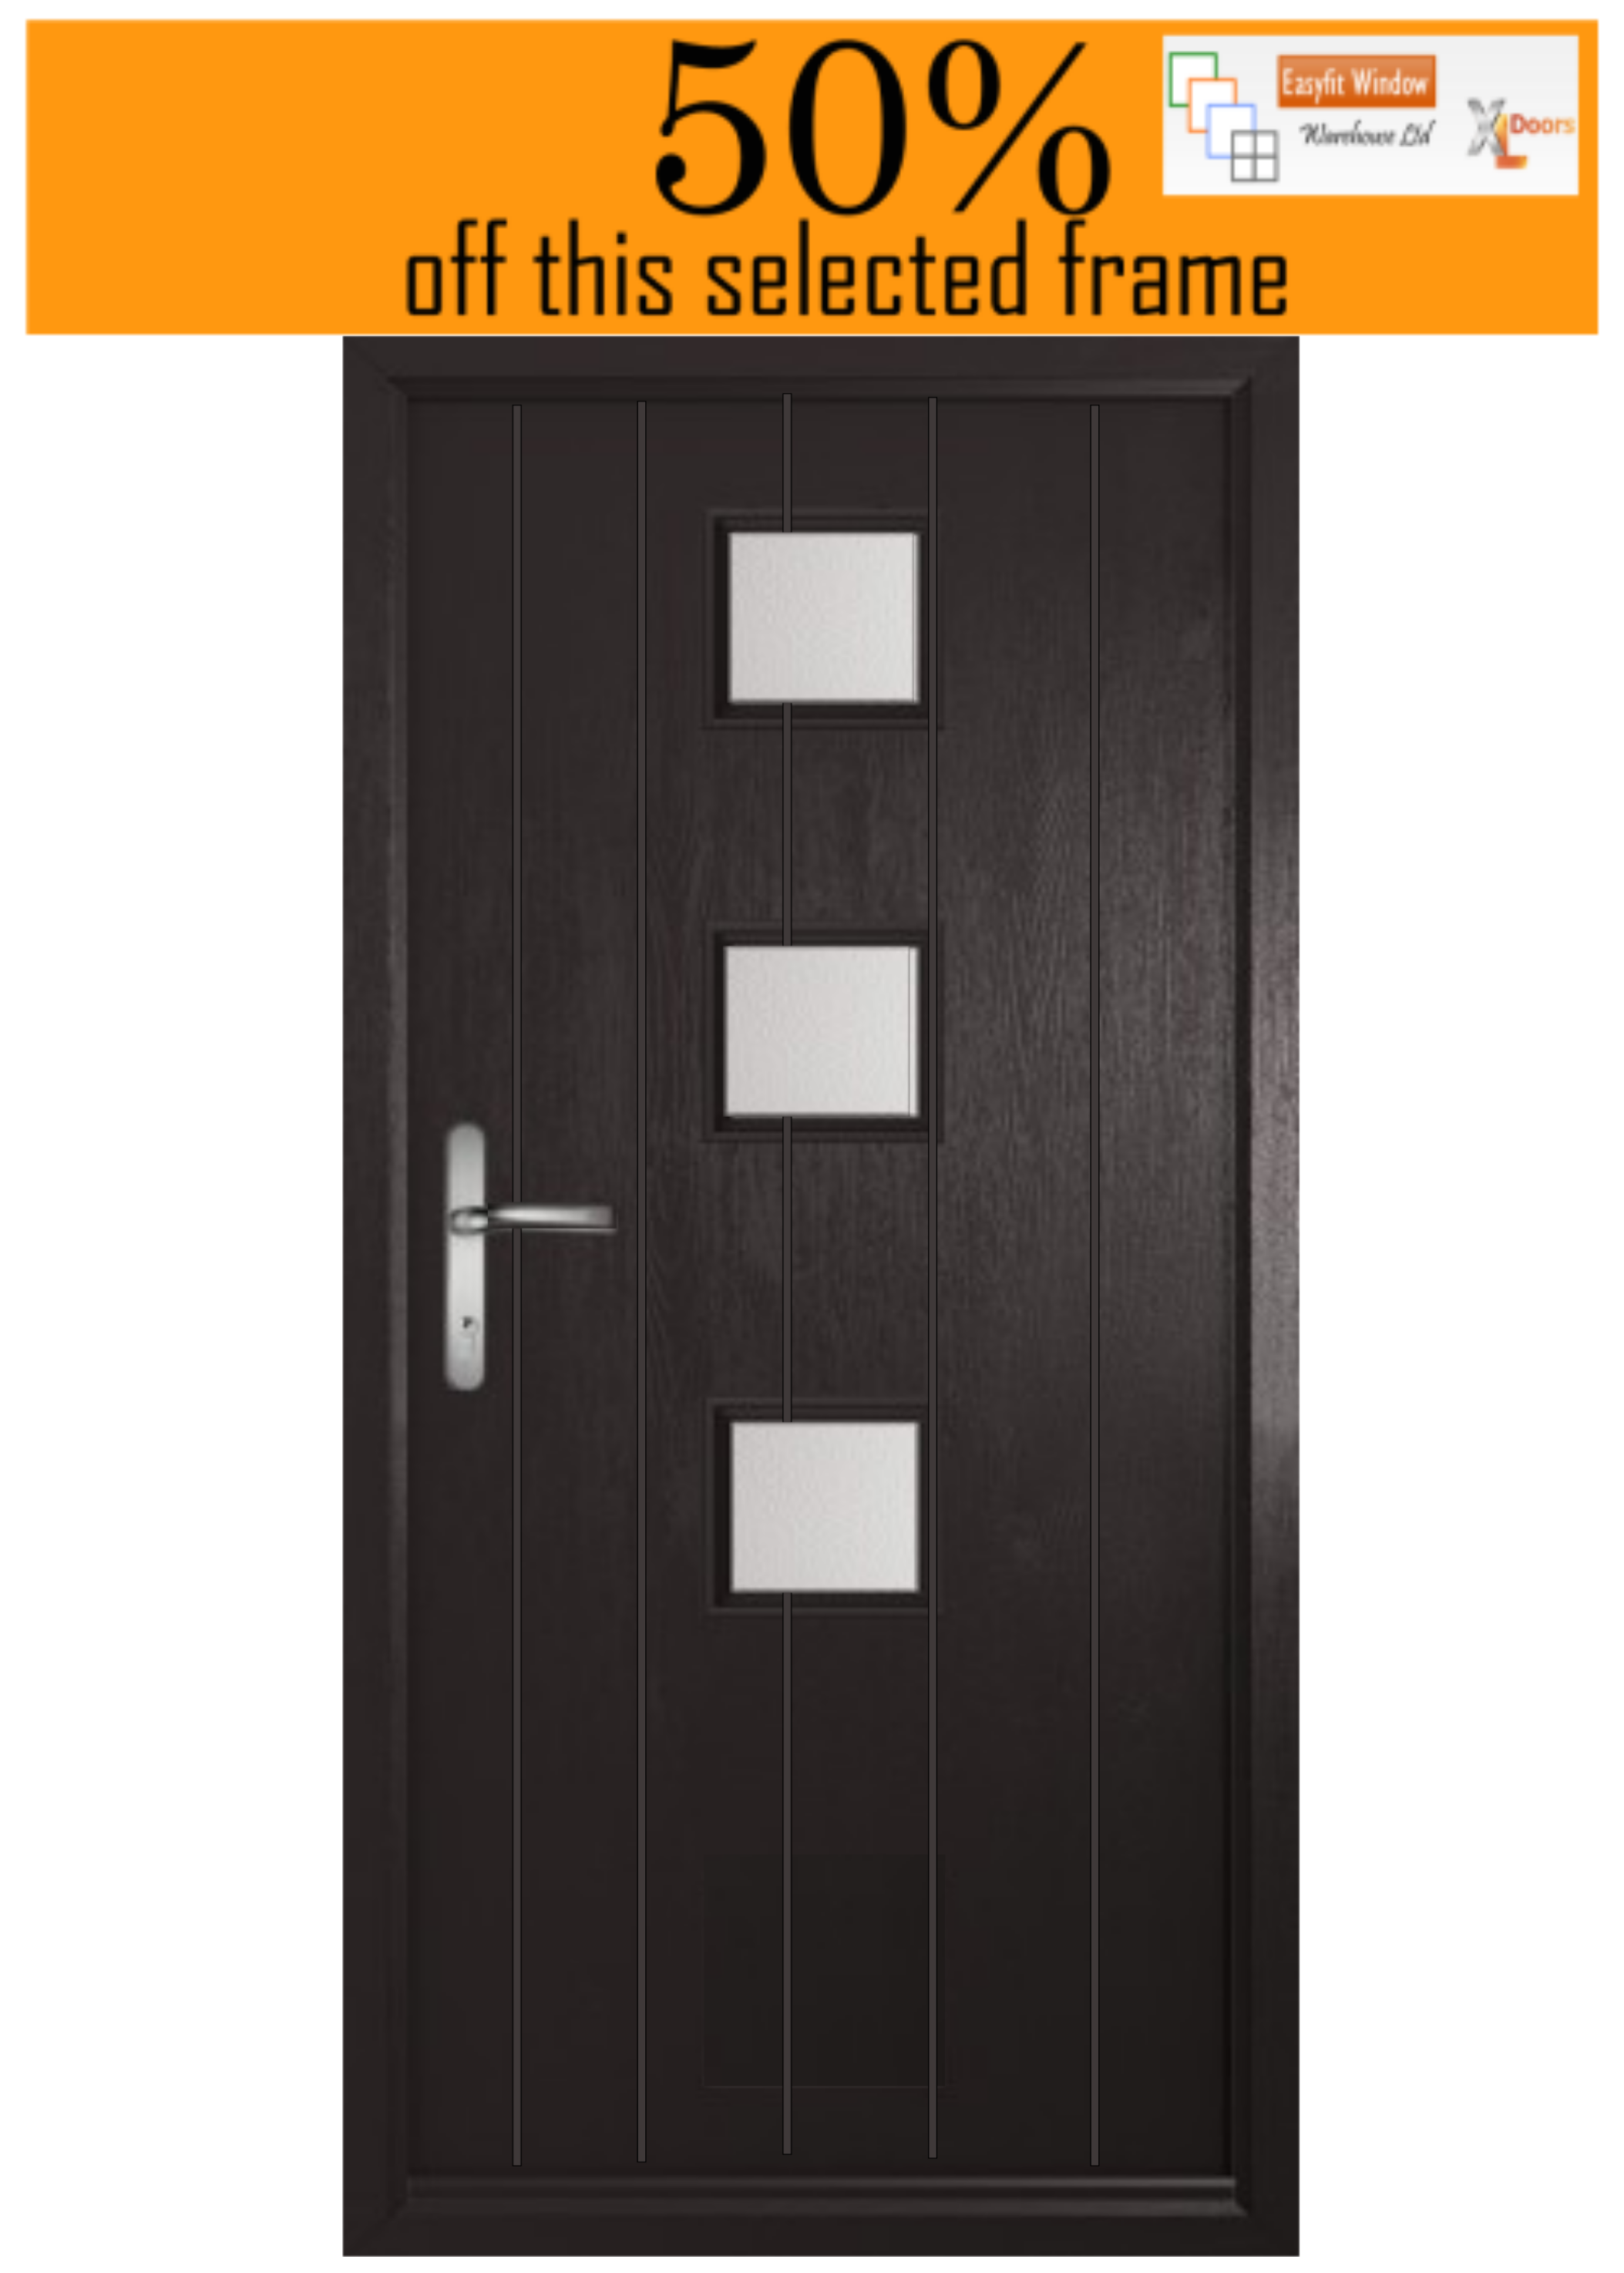 Seminole3 Composite door. Black frame and door on both sides. Hinged on the Right (viewed from the outside) and opening IN. Chrome lever/leverhandle. Height is excluding a cill. Glass in any standard obscure.